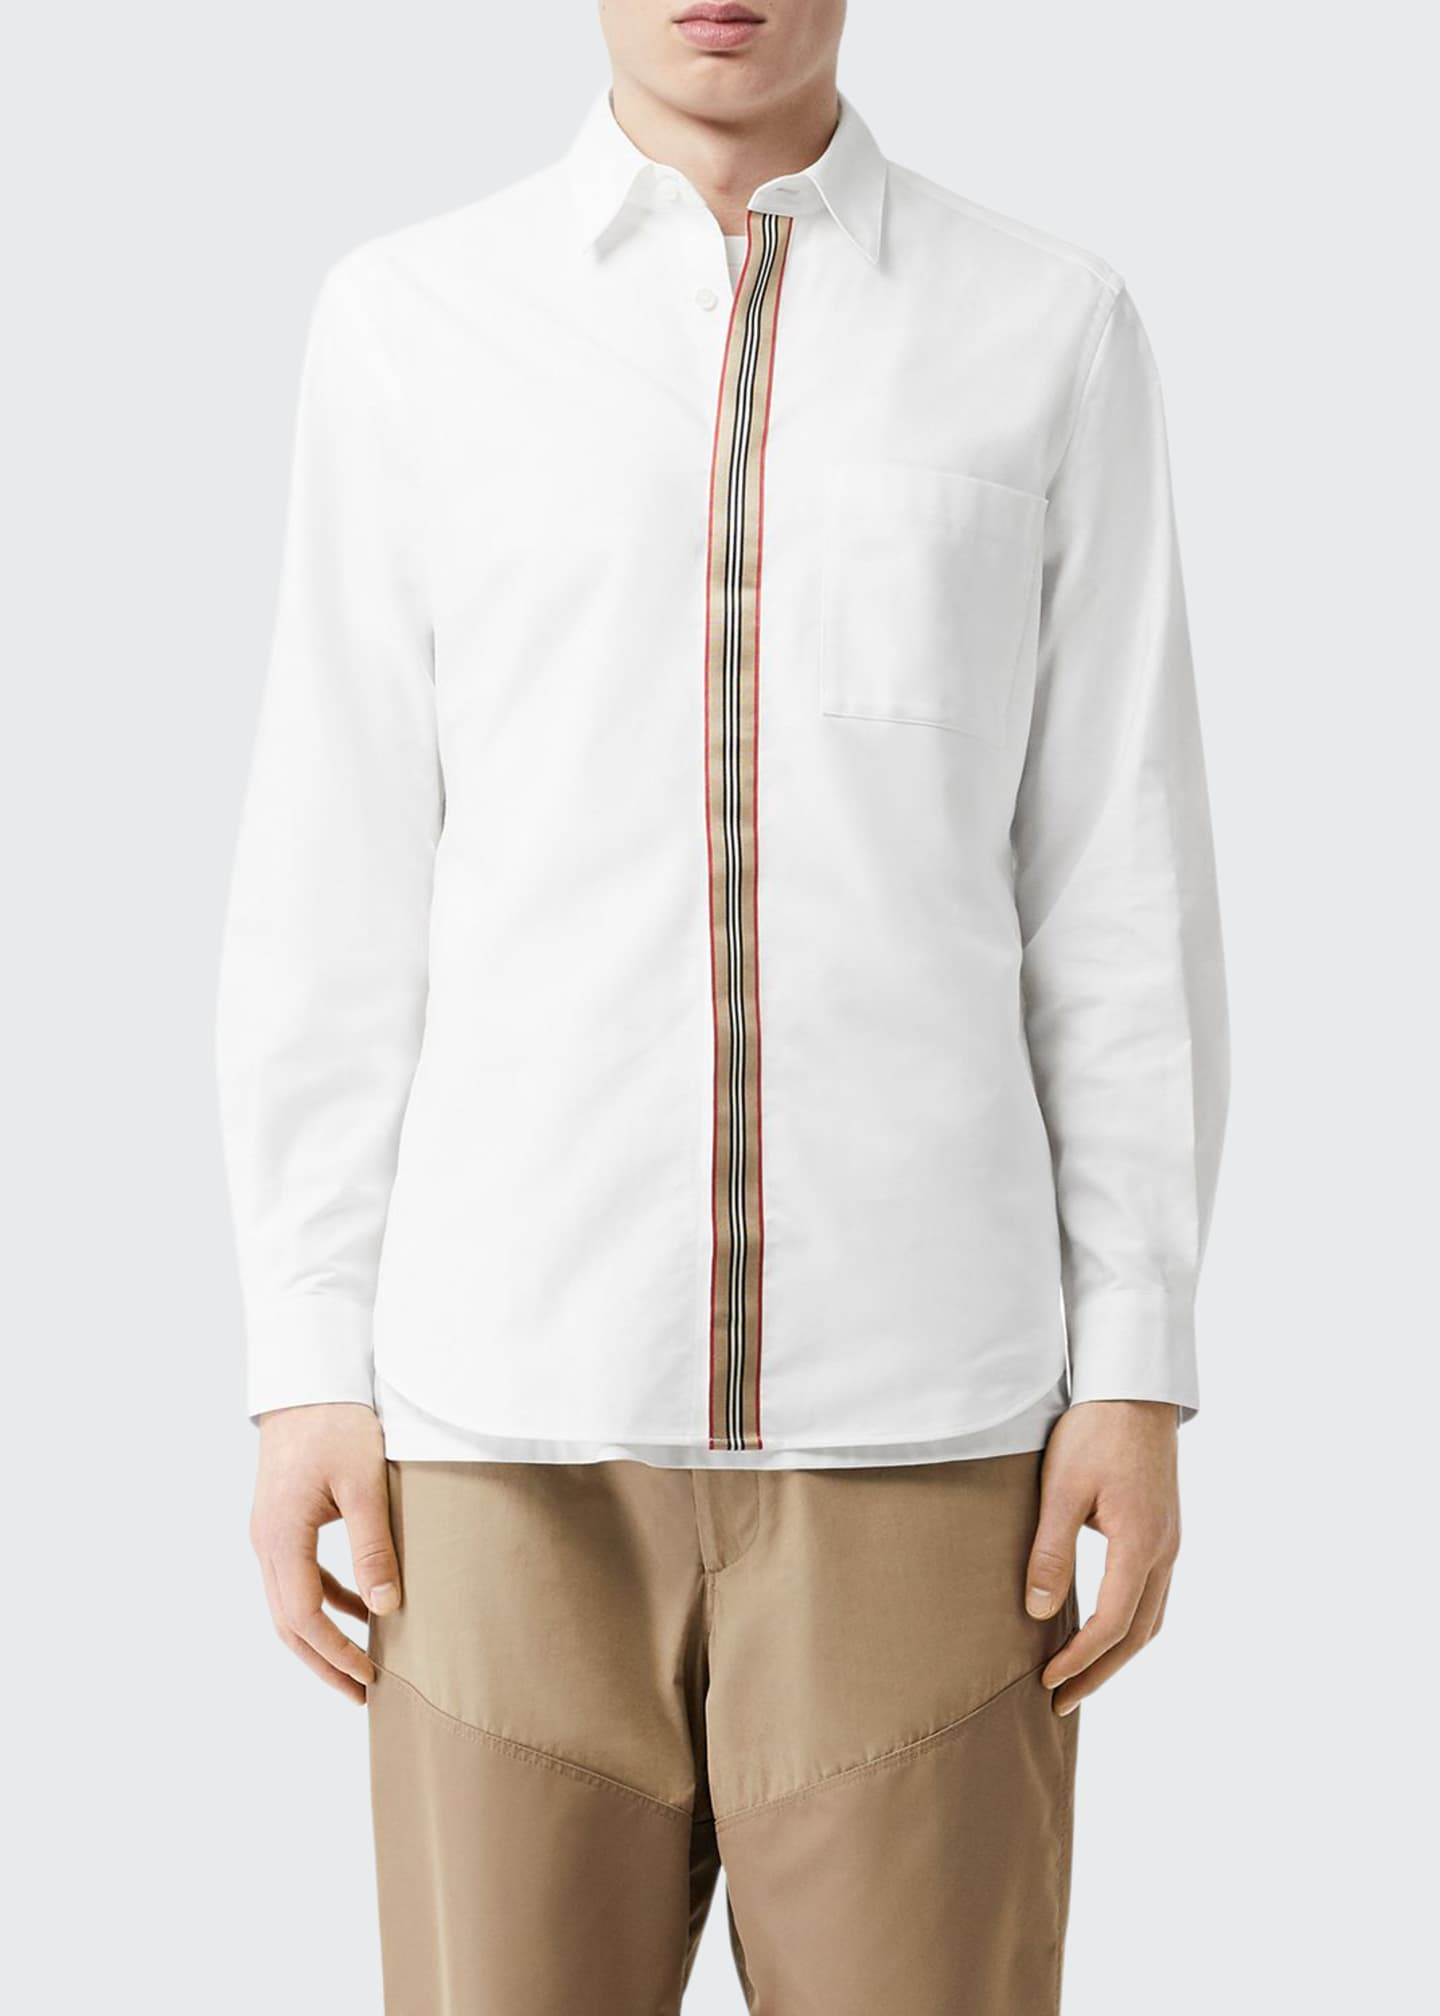 Burberry Men's Icon Stripe Tape Concealed-Placket Oxford Shirt